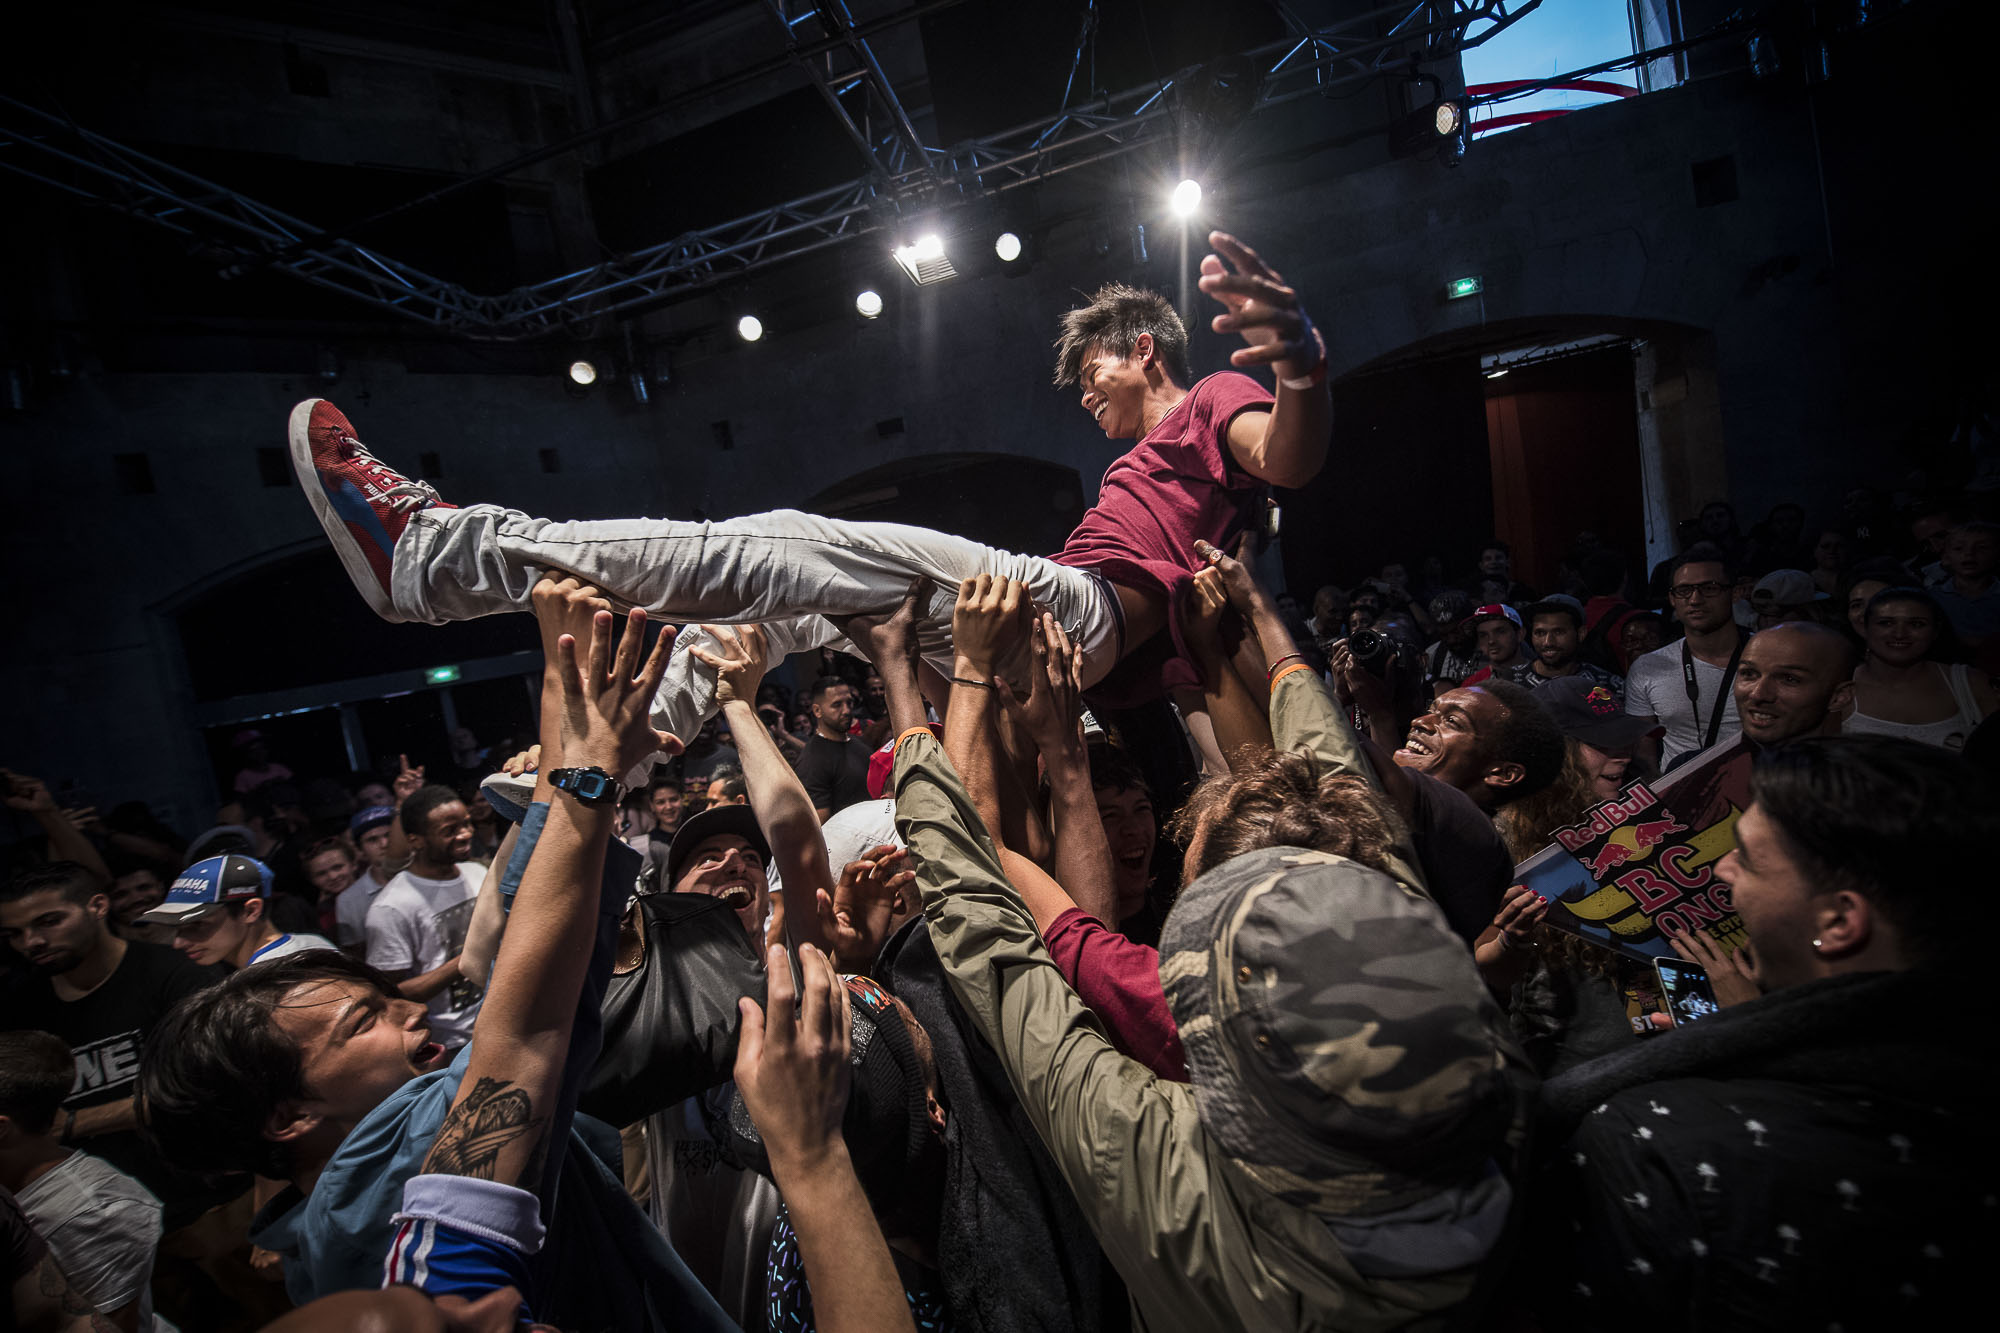 Will (winner) celebrating his victory with his whole crew Tekken from Lyon at the WIP Villette during the Red Bull BC One France Cypher Final in Paris, France on July 10th 2016.